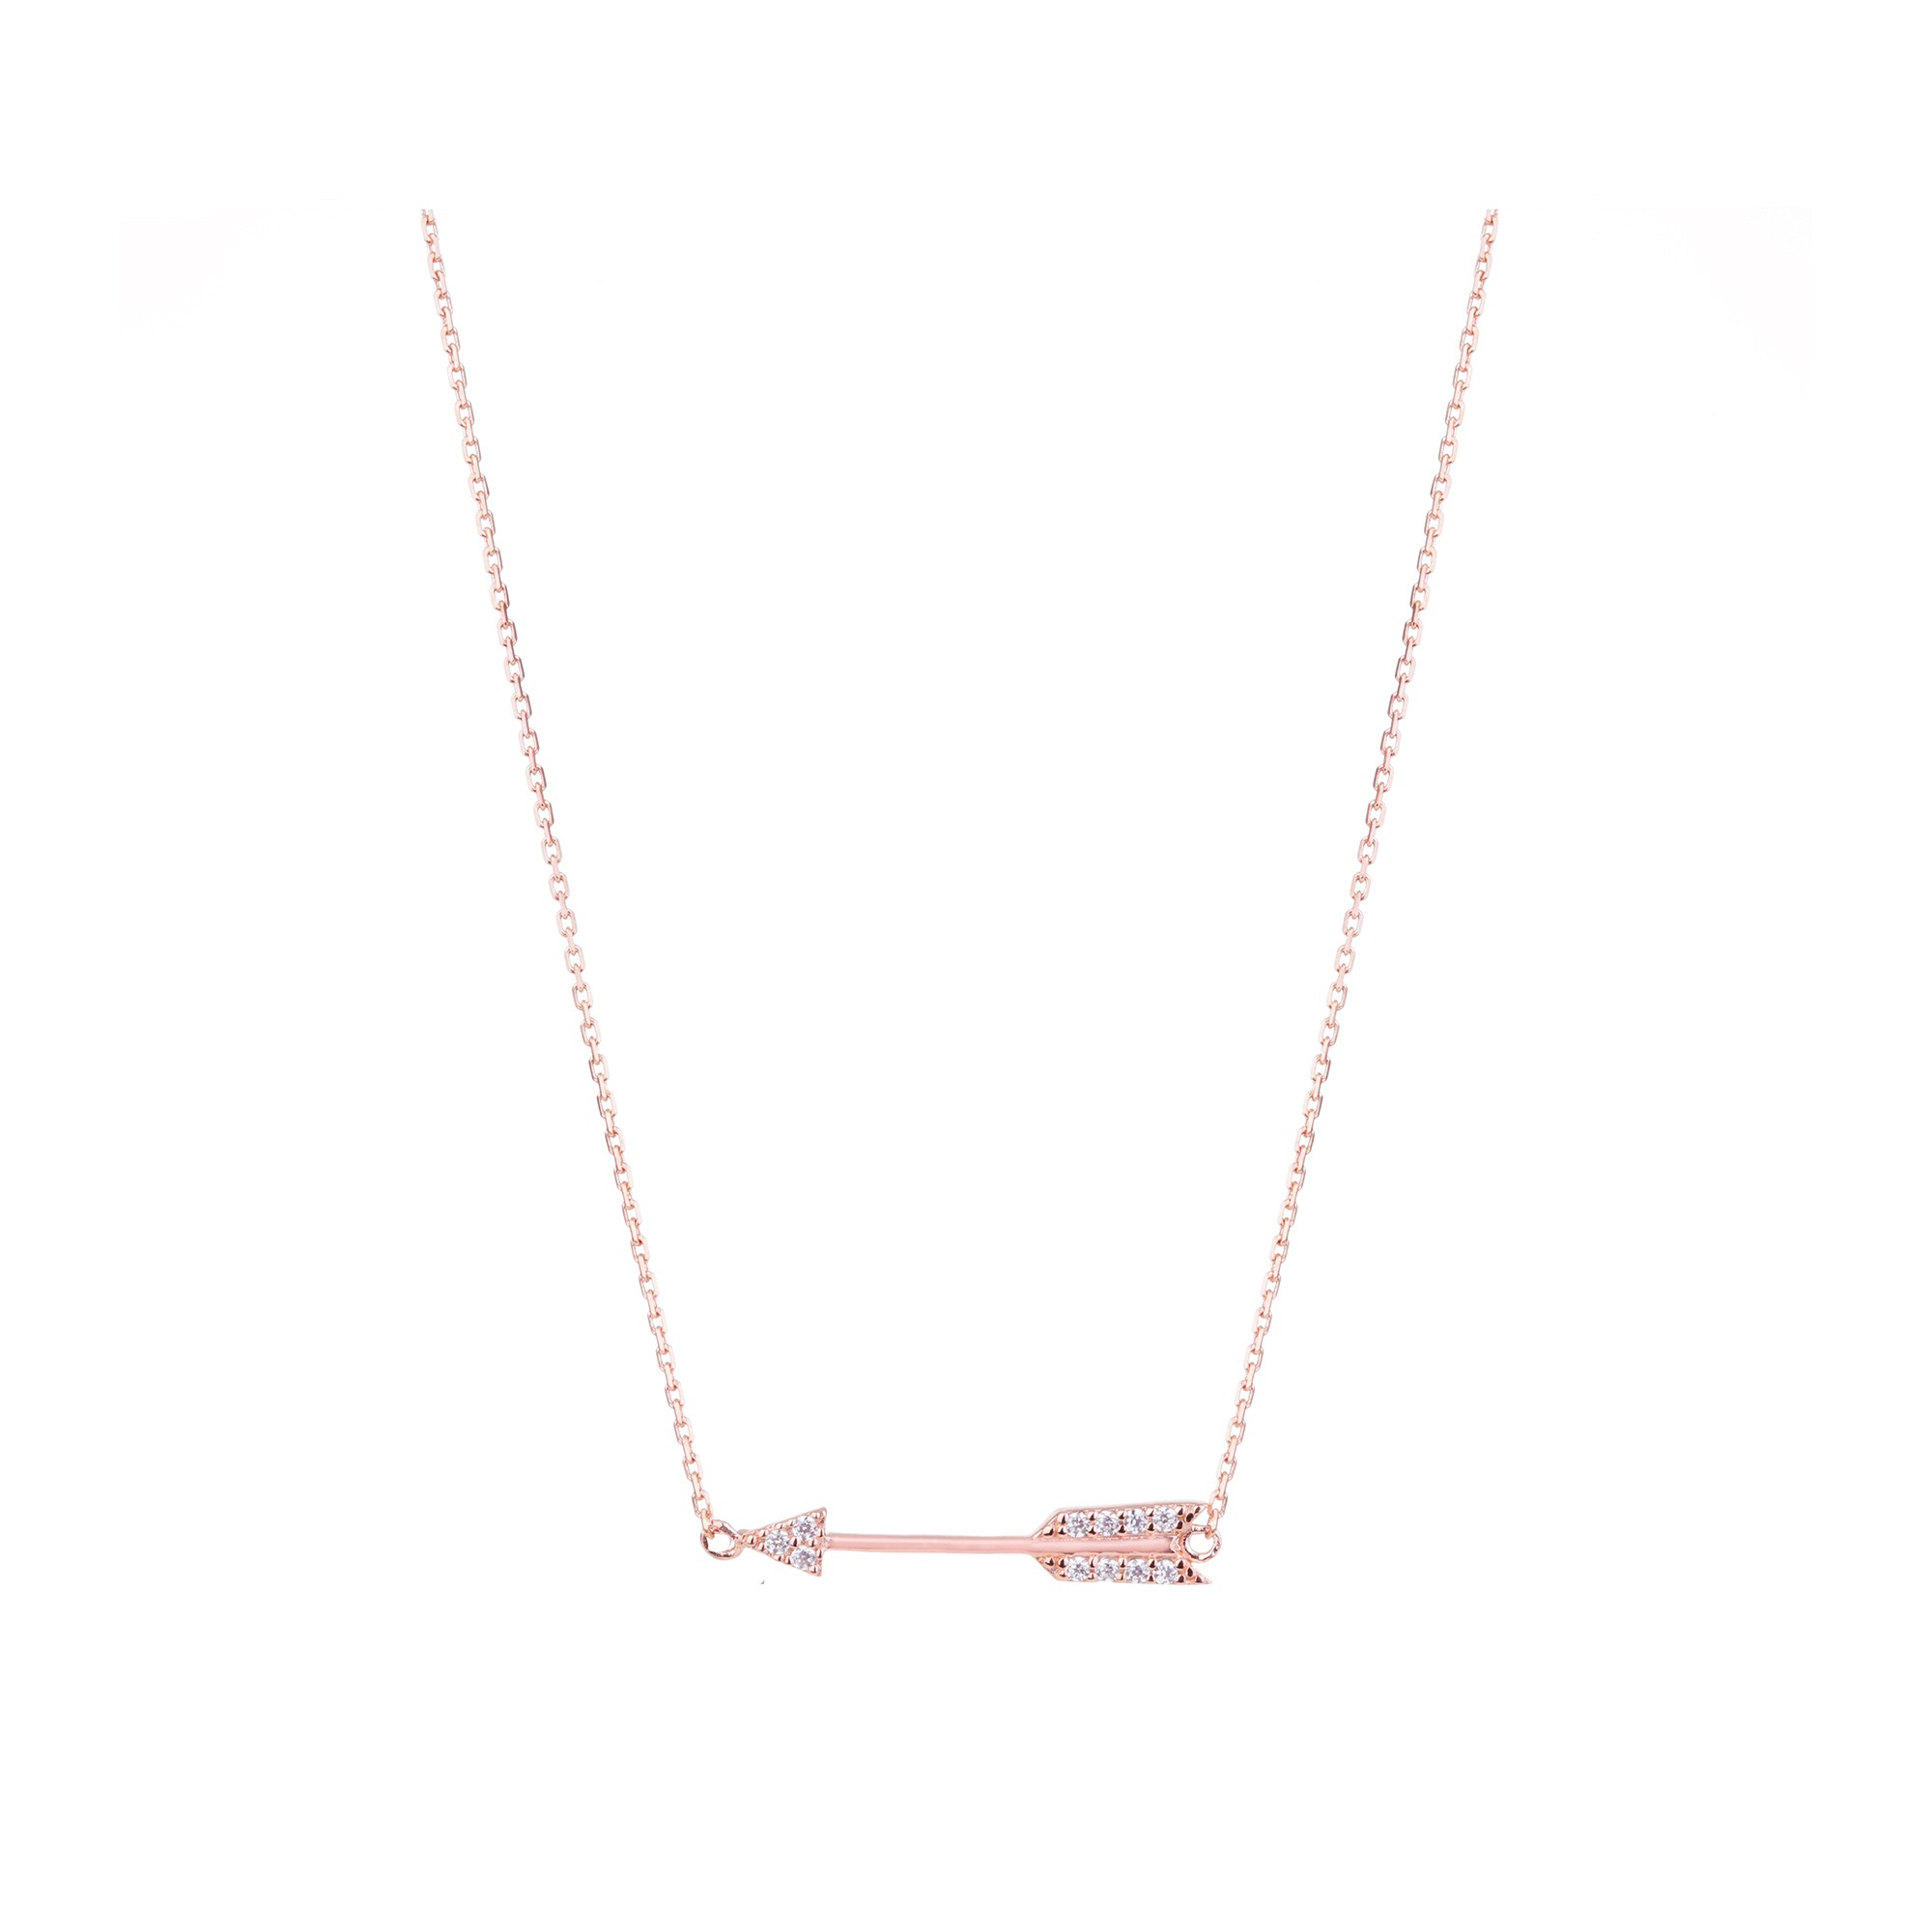 Rose Gold Plated 925 Sterling Silver Cz Mini Arrow Necklace In Most Current Sparkling Arrow Necklaces (View 18 of 25)